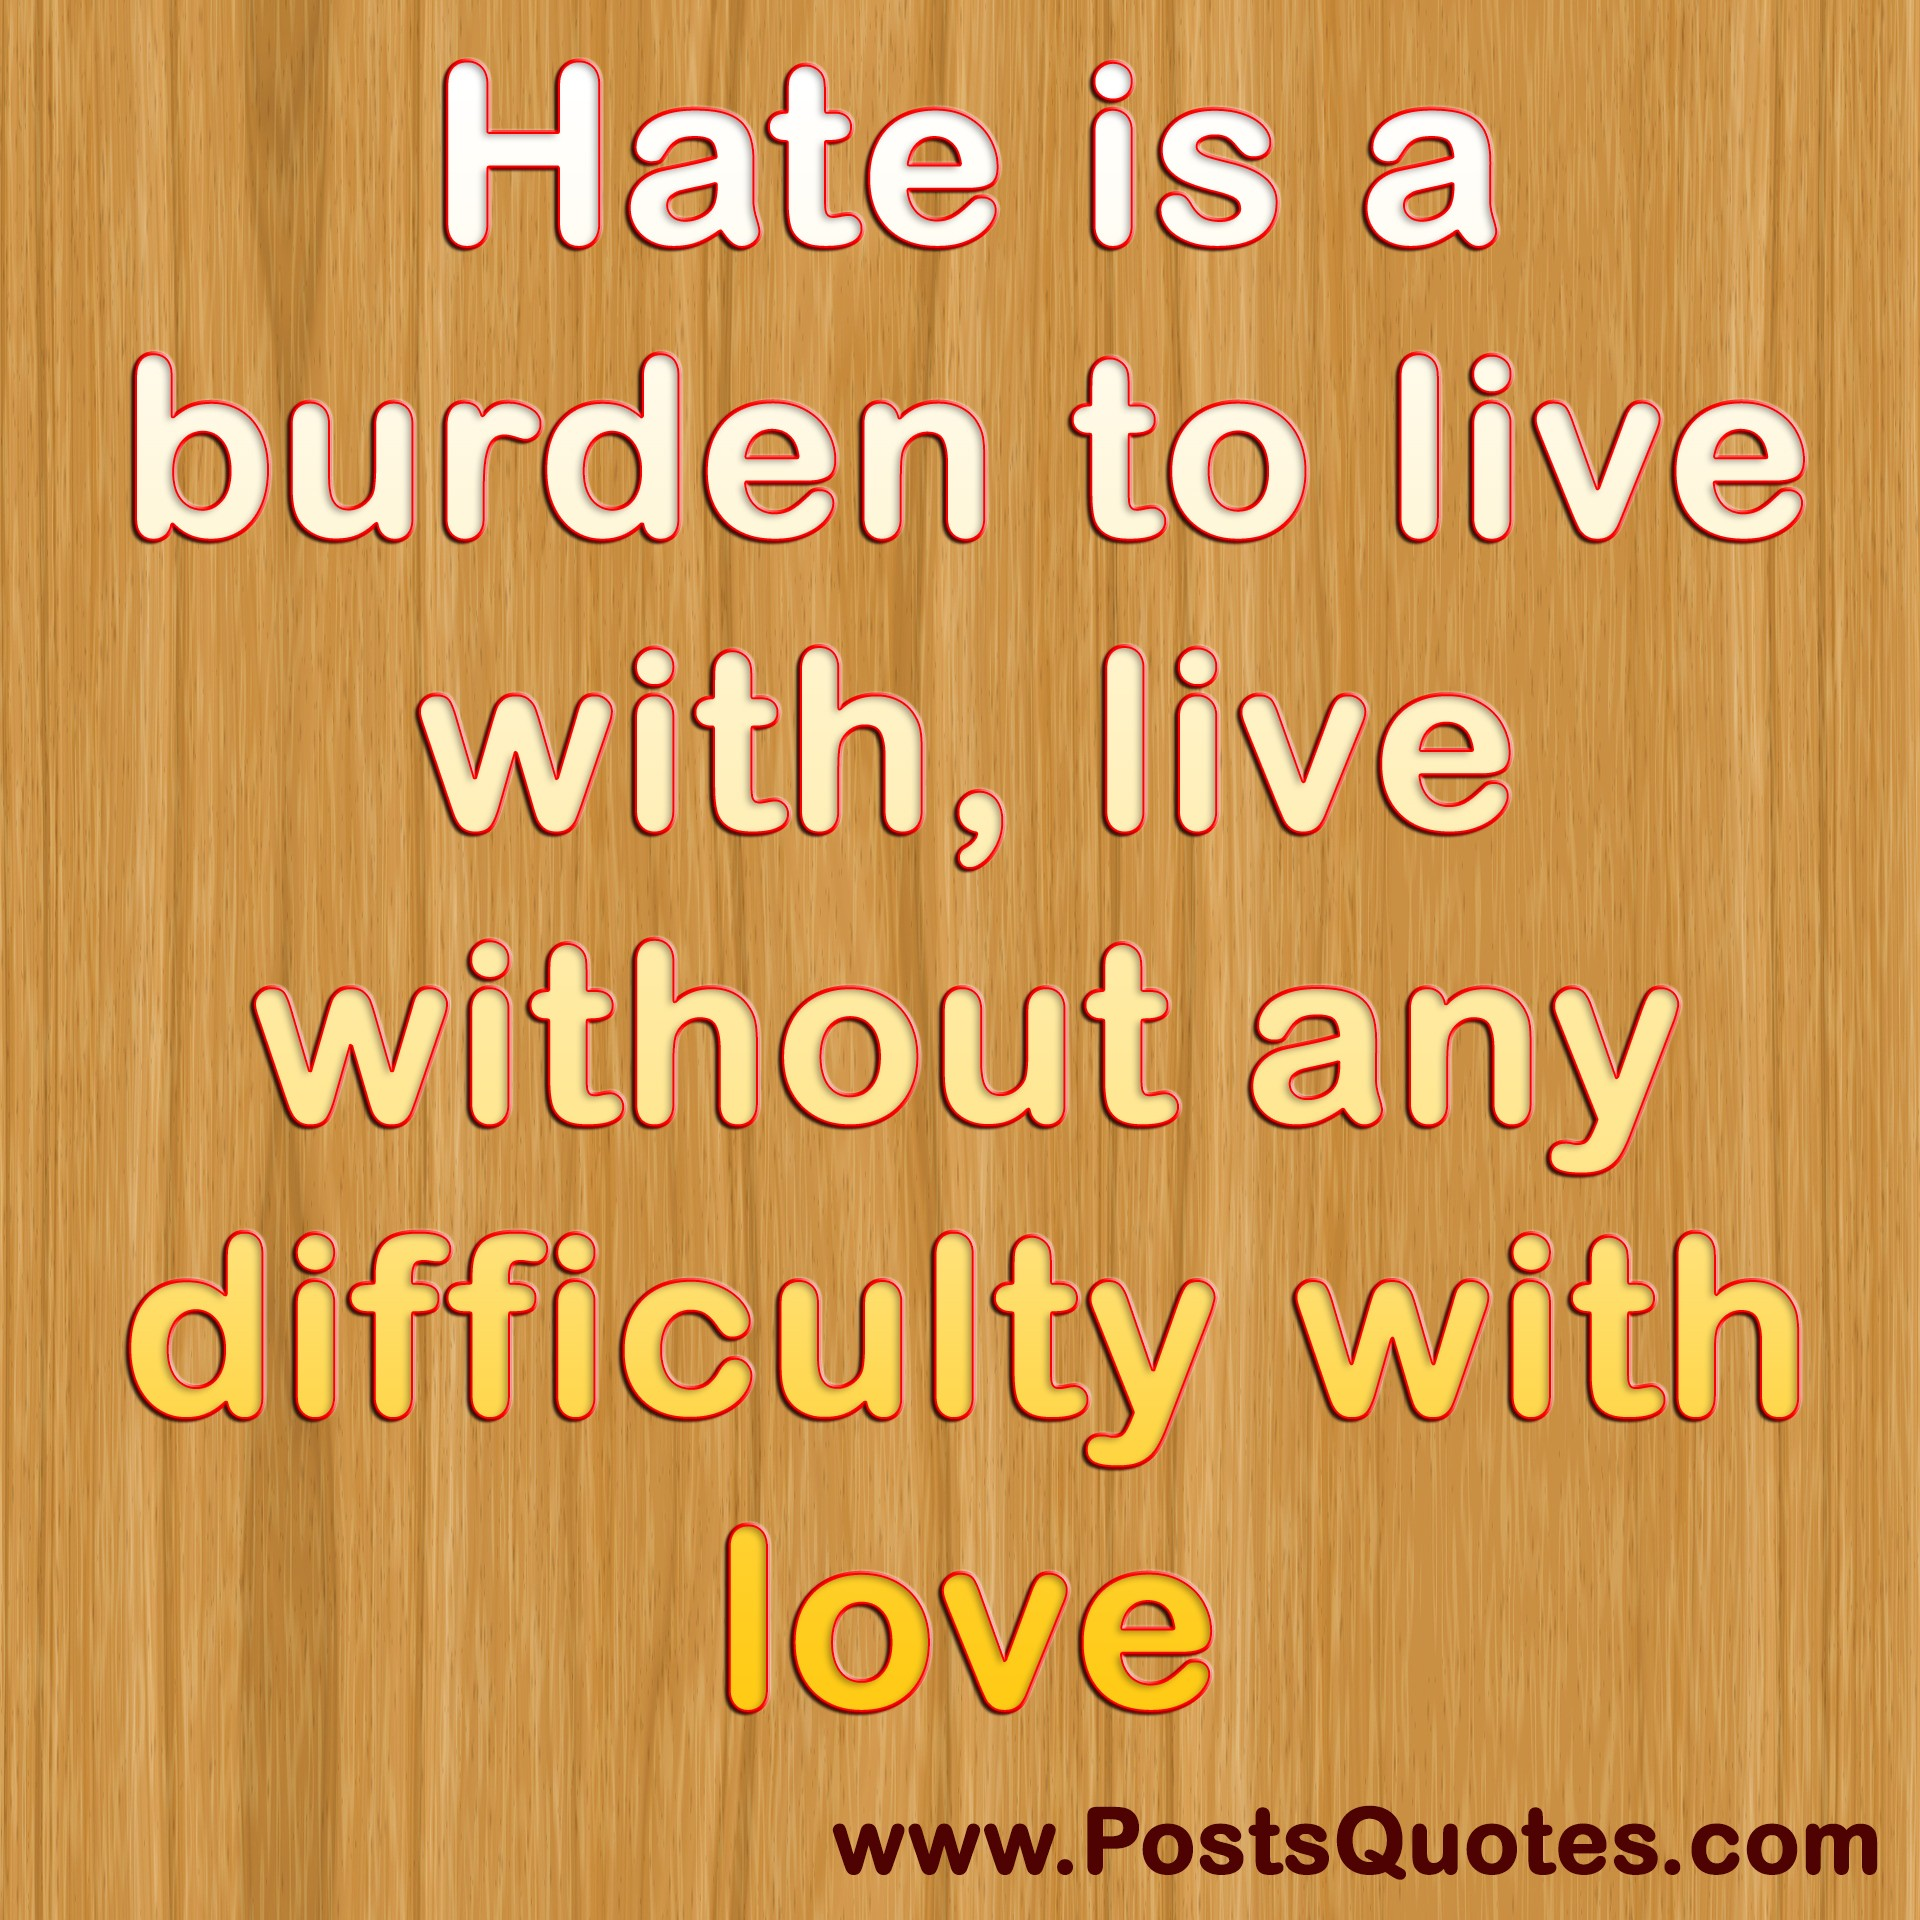 quotes images